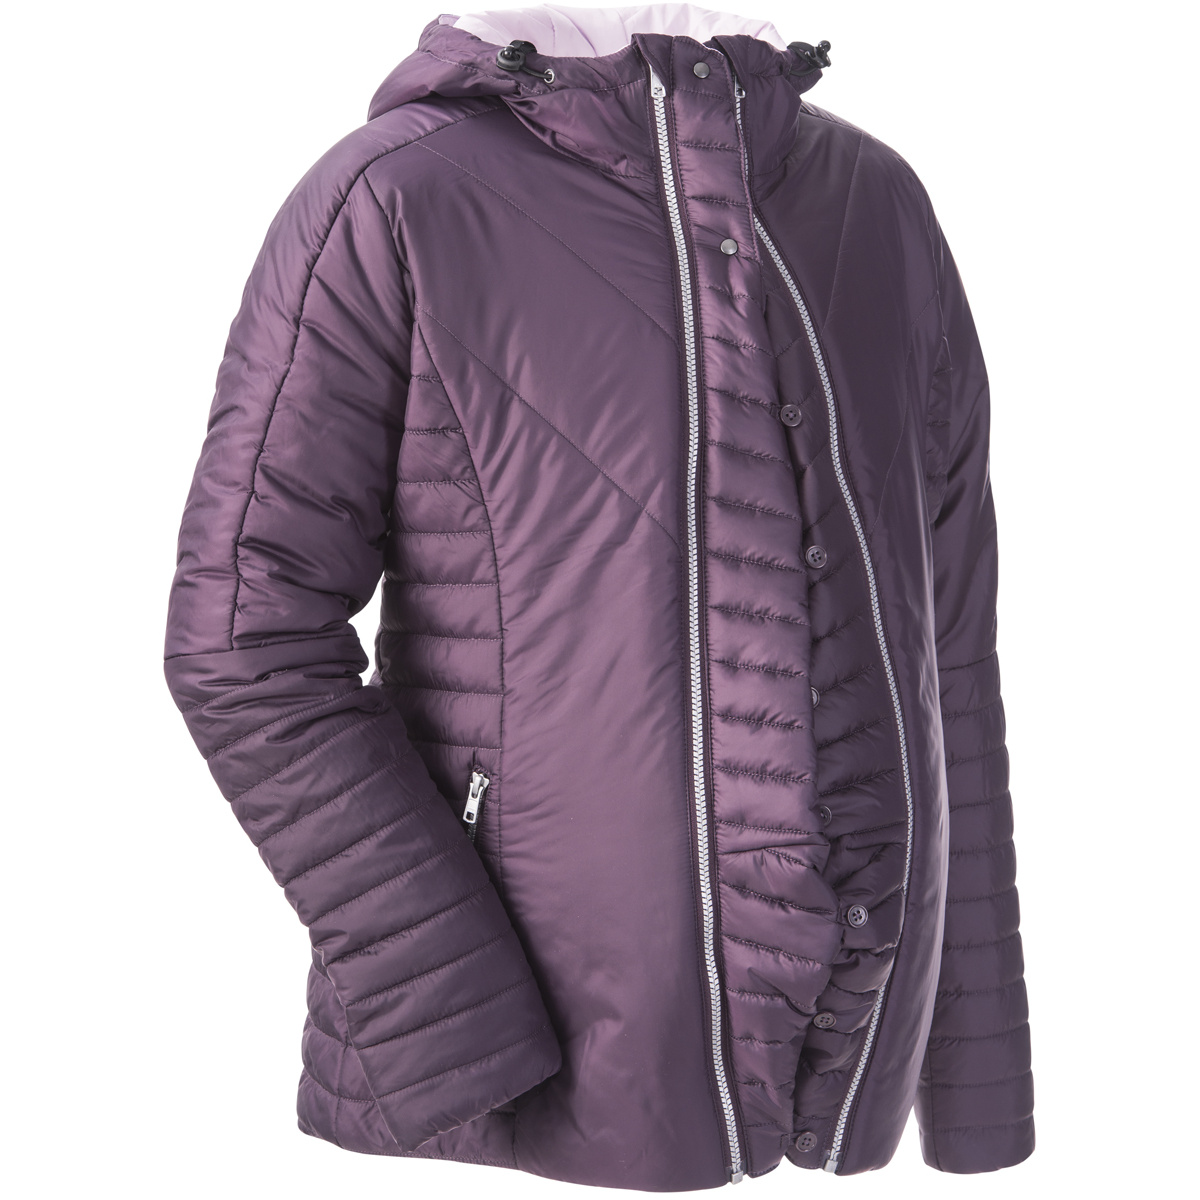 Quilted Winter Jacket for Babywearing, 229,00